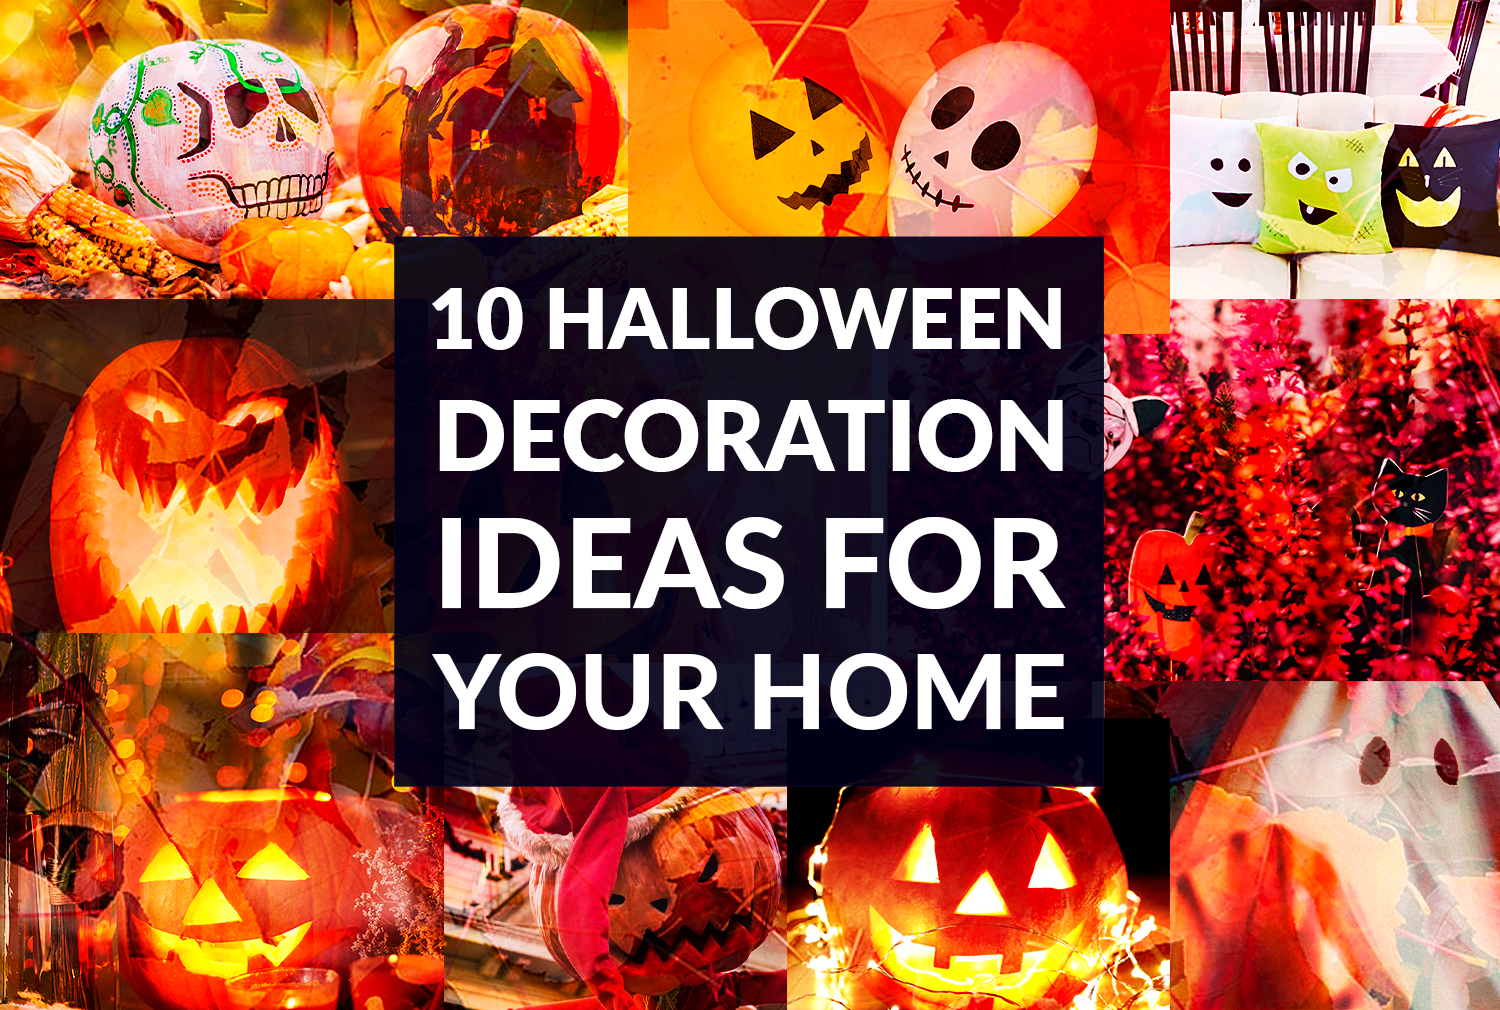 top 10 halloween ideas home spooky pumpkins lights candle collage